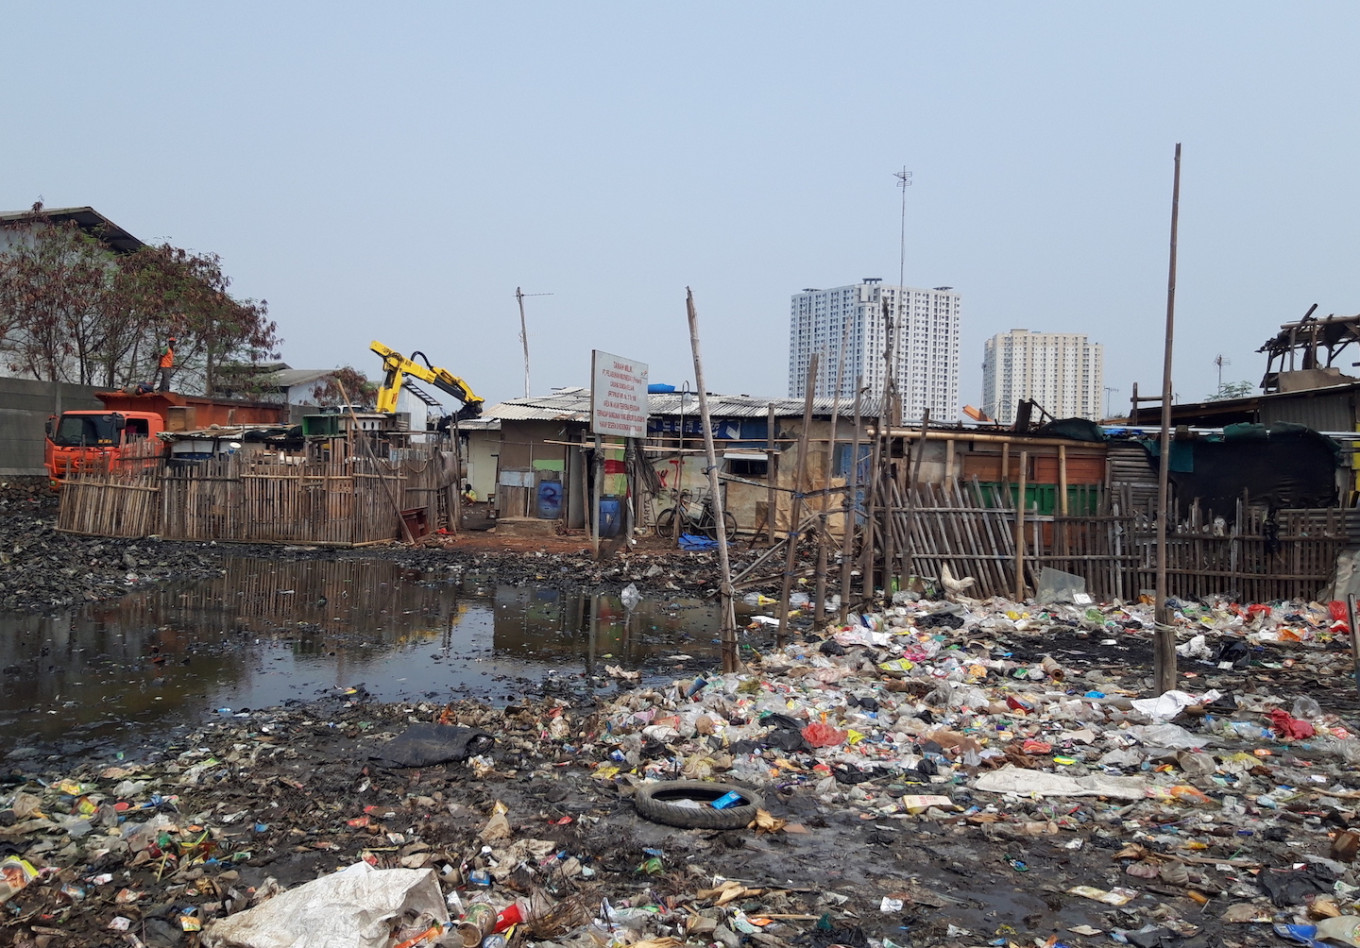 People living side-by-side with trash in North Jakarta kampung